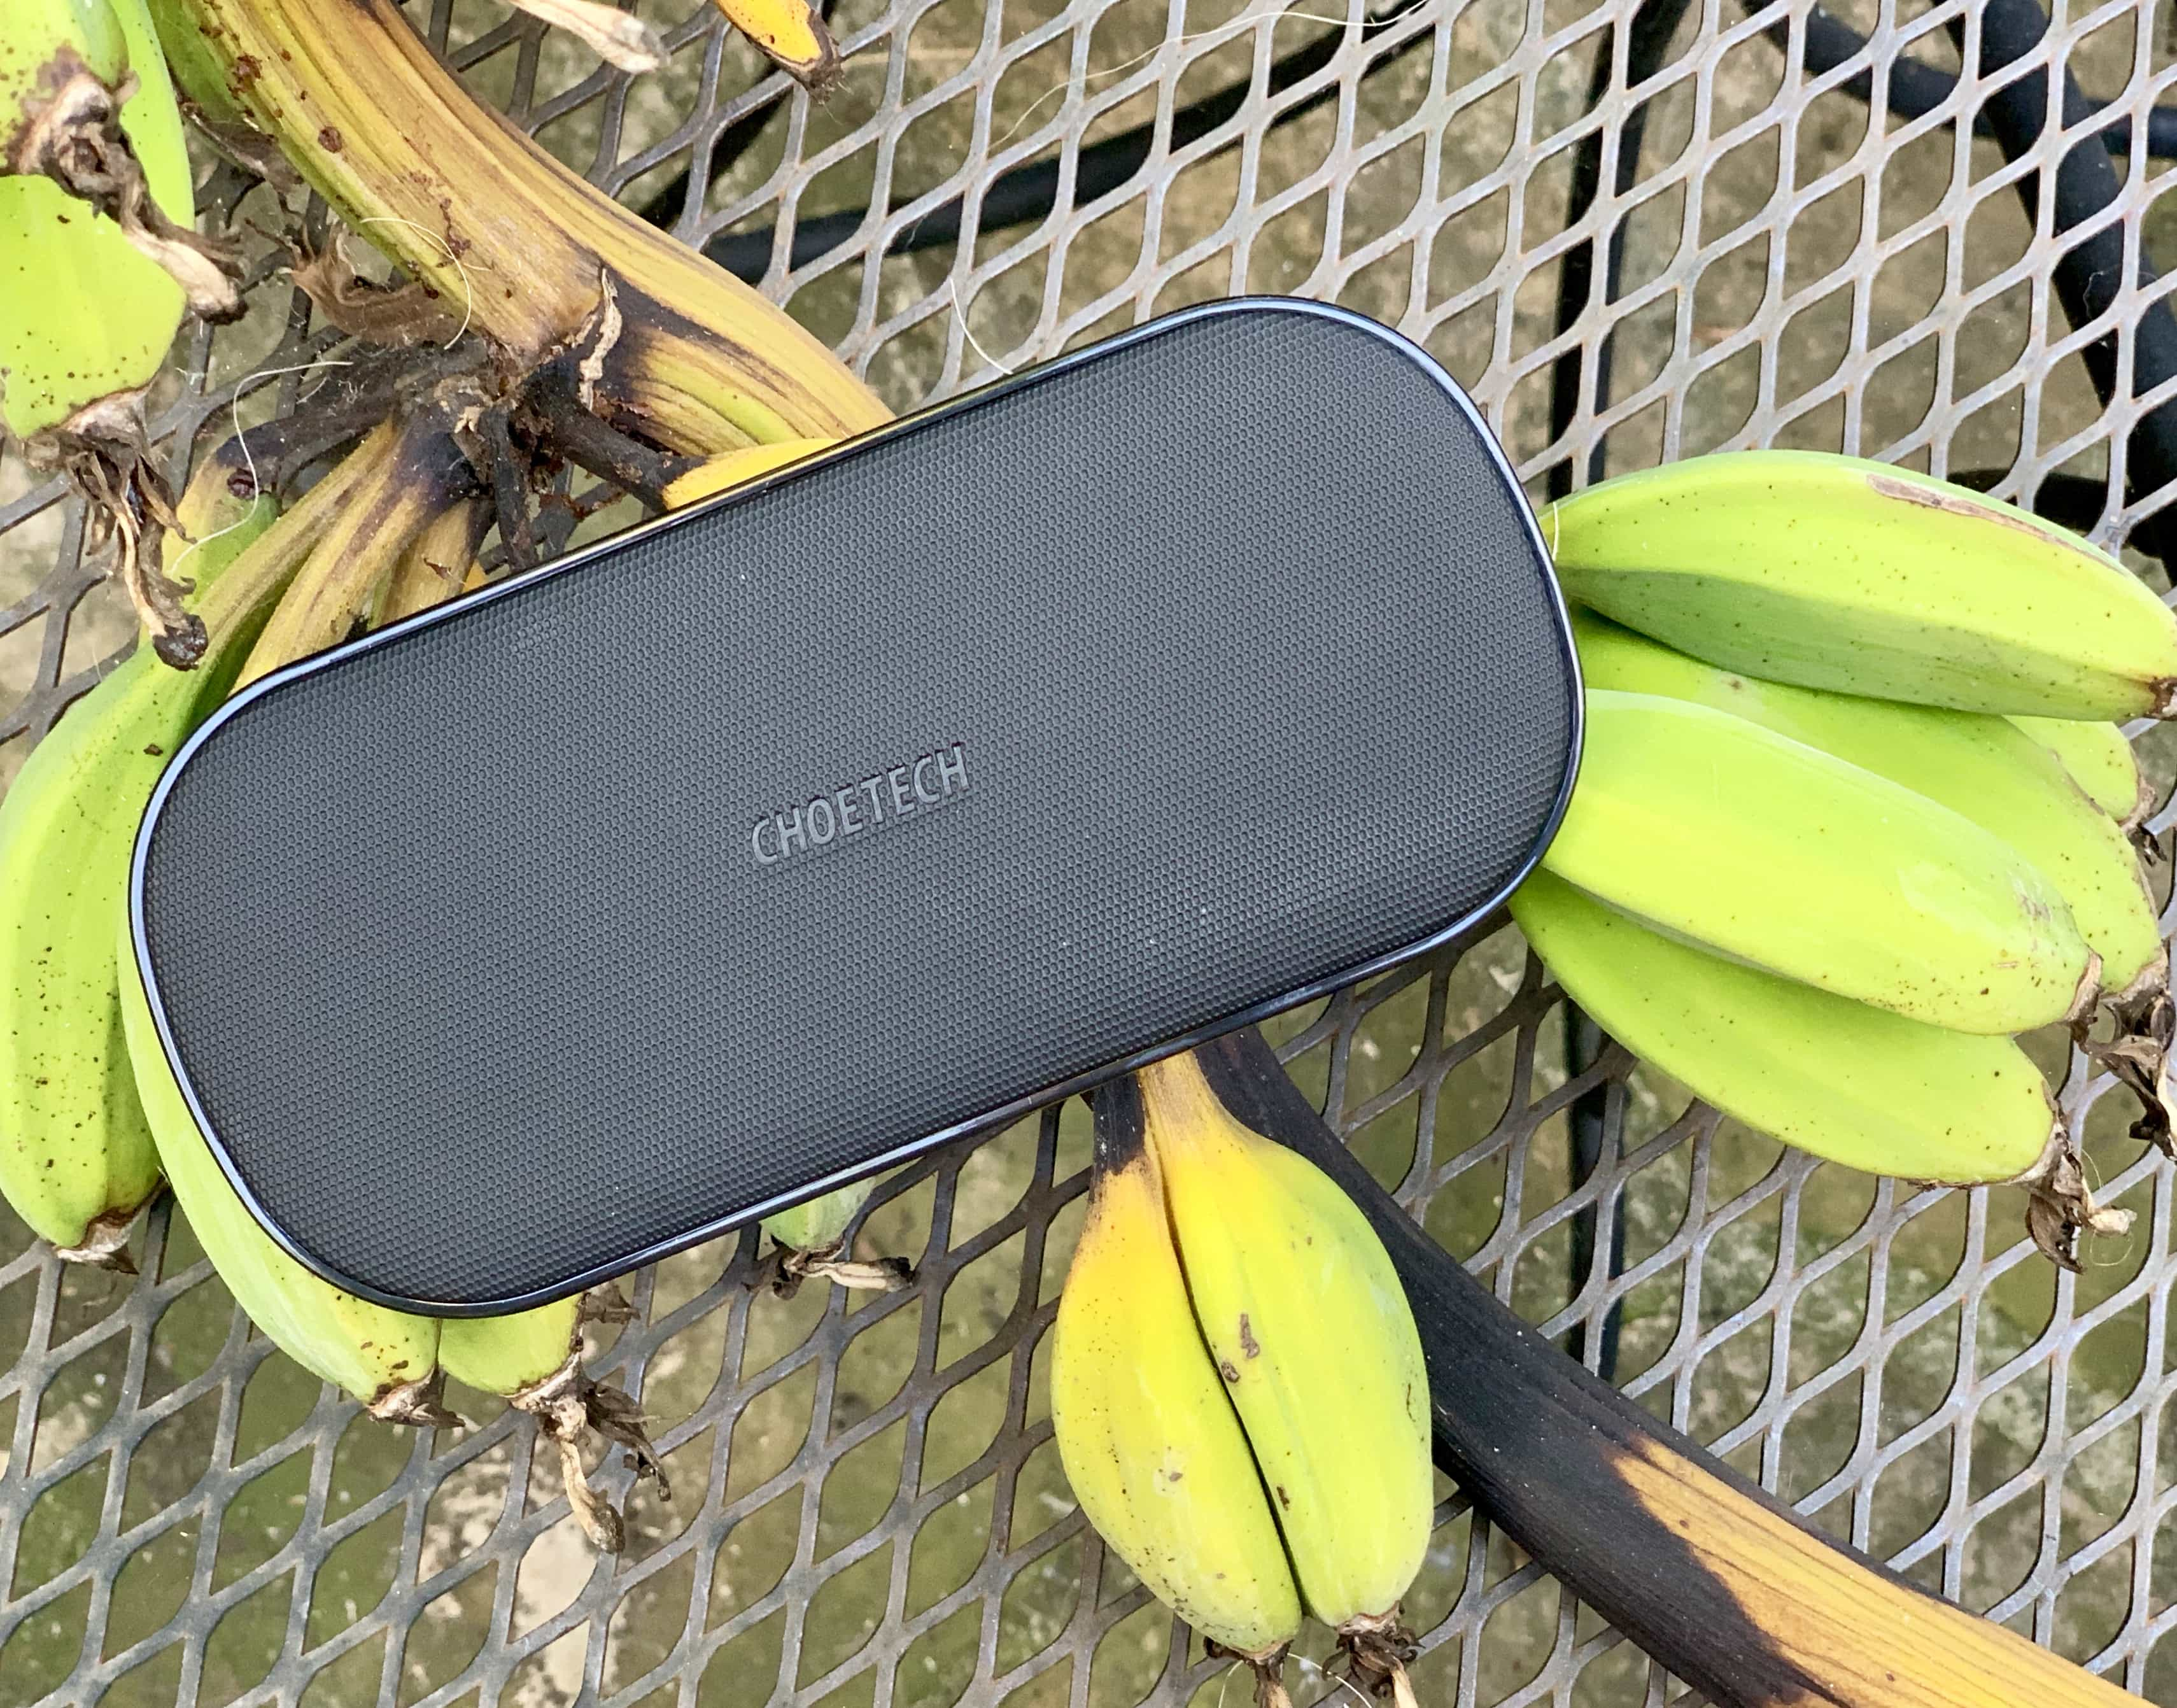 Choetech Dual Wireless Fast Charger